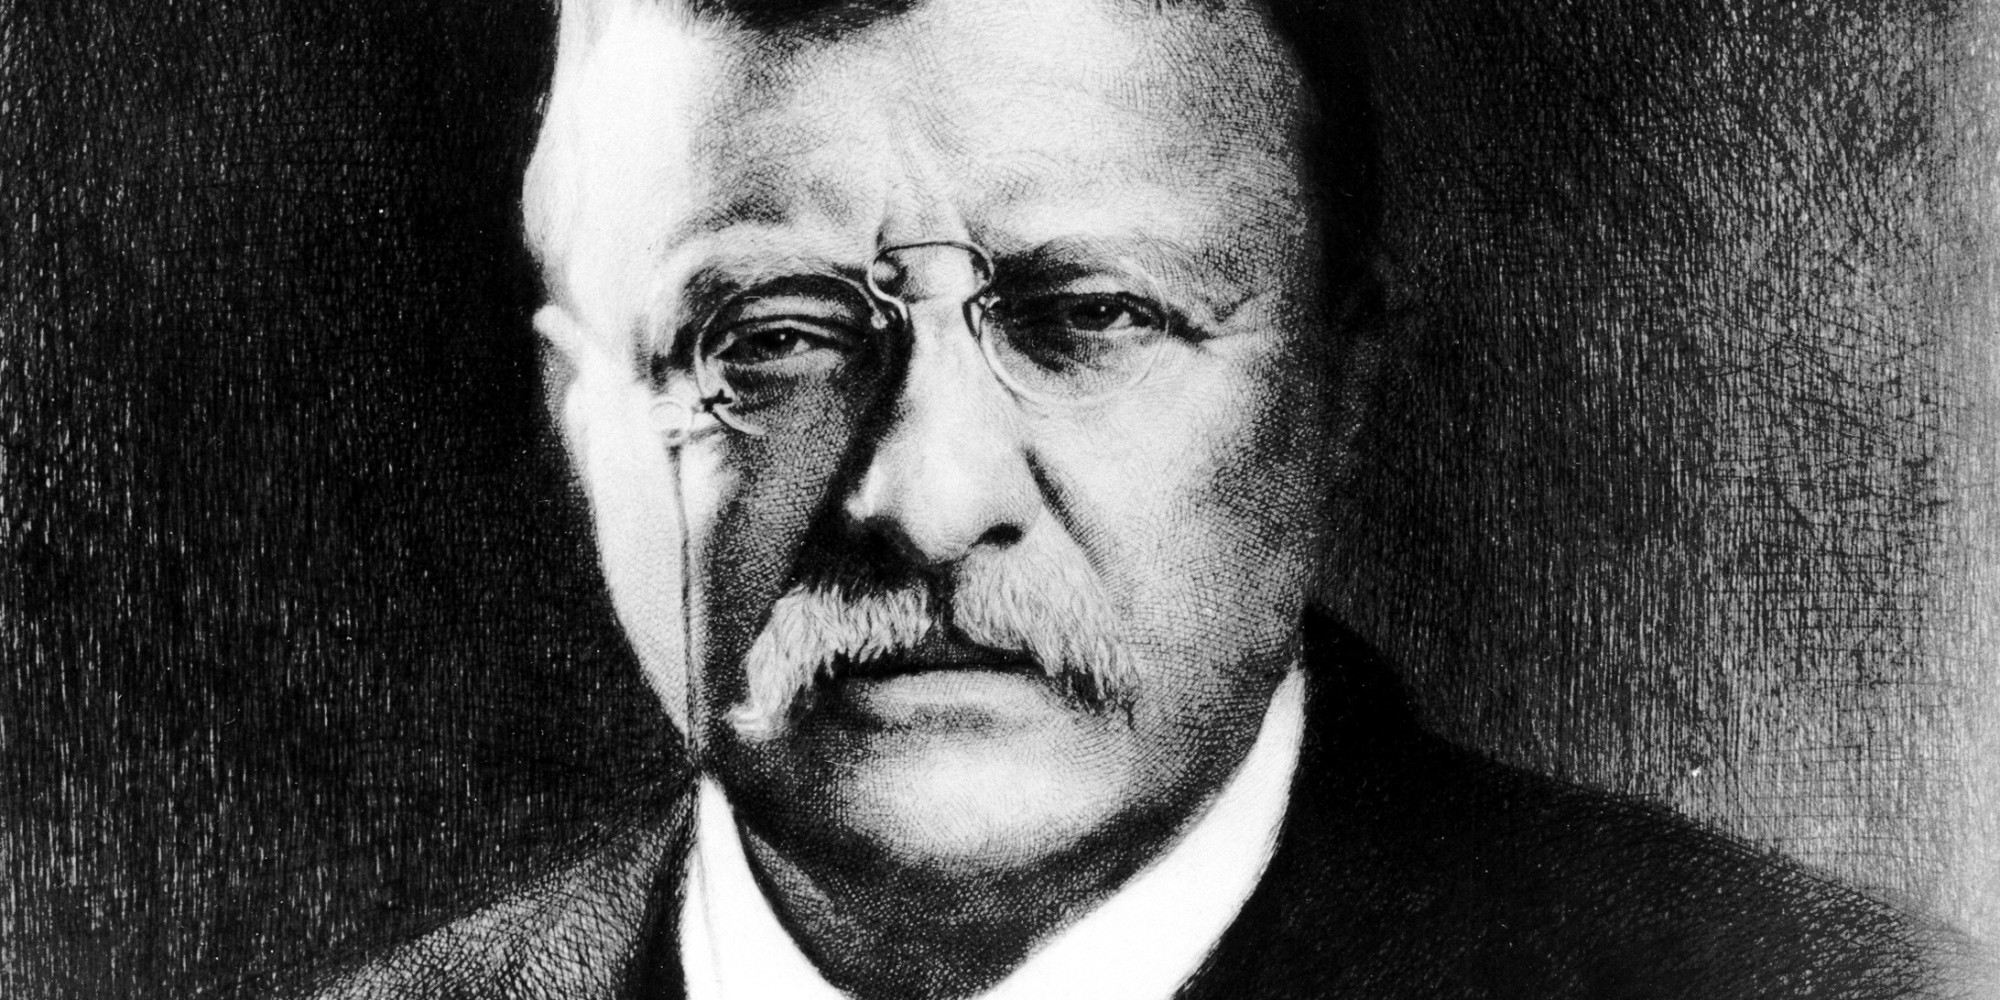 teddy roosevelt presidency essay Theodore roosevelt essays biography theodore roosevelt turned into born on october 27, 1858, in new york town to parents theodore roosevelt, sr, and martha bulloch roosevelt both his dad and mom came from wealthy families, his father's ancestors having settled on new york island in 1644.